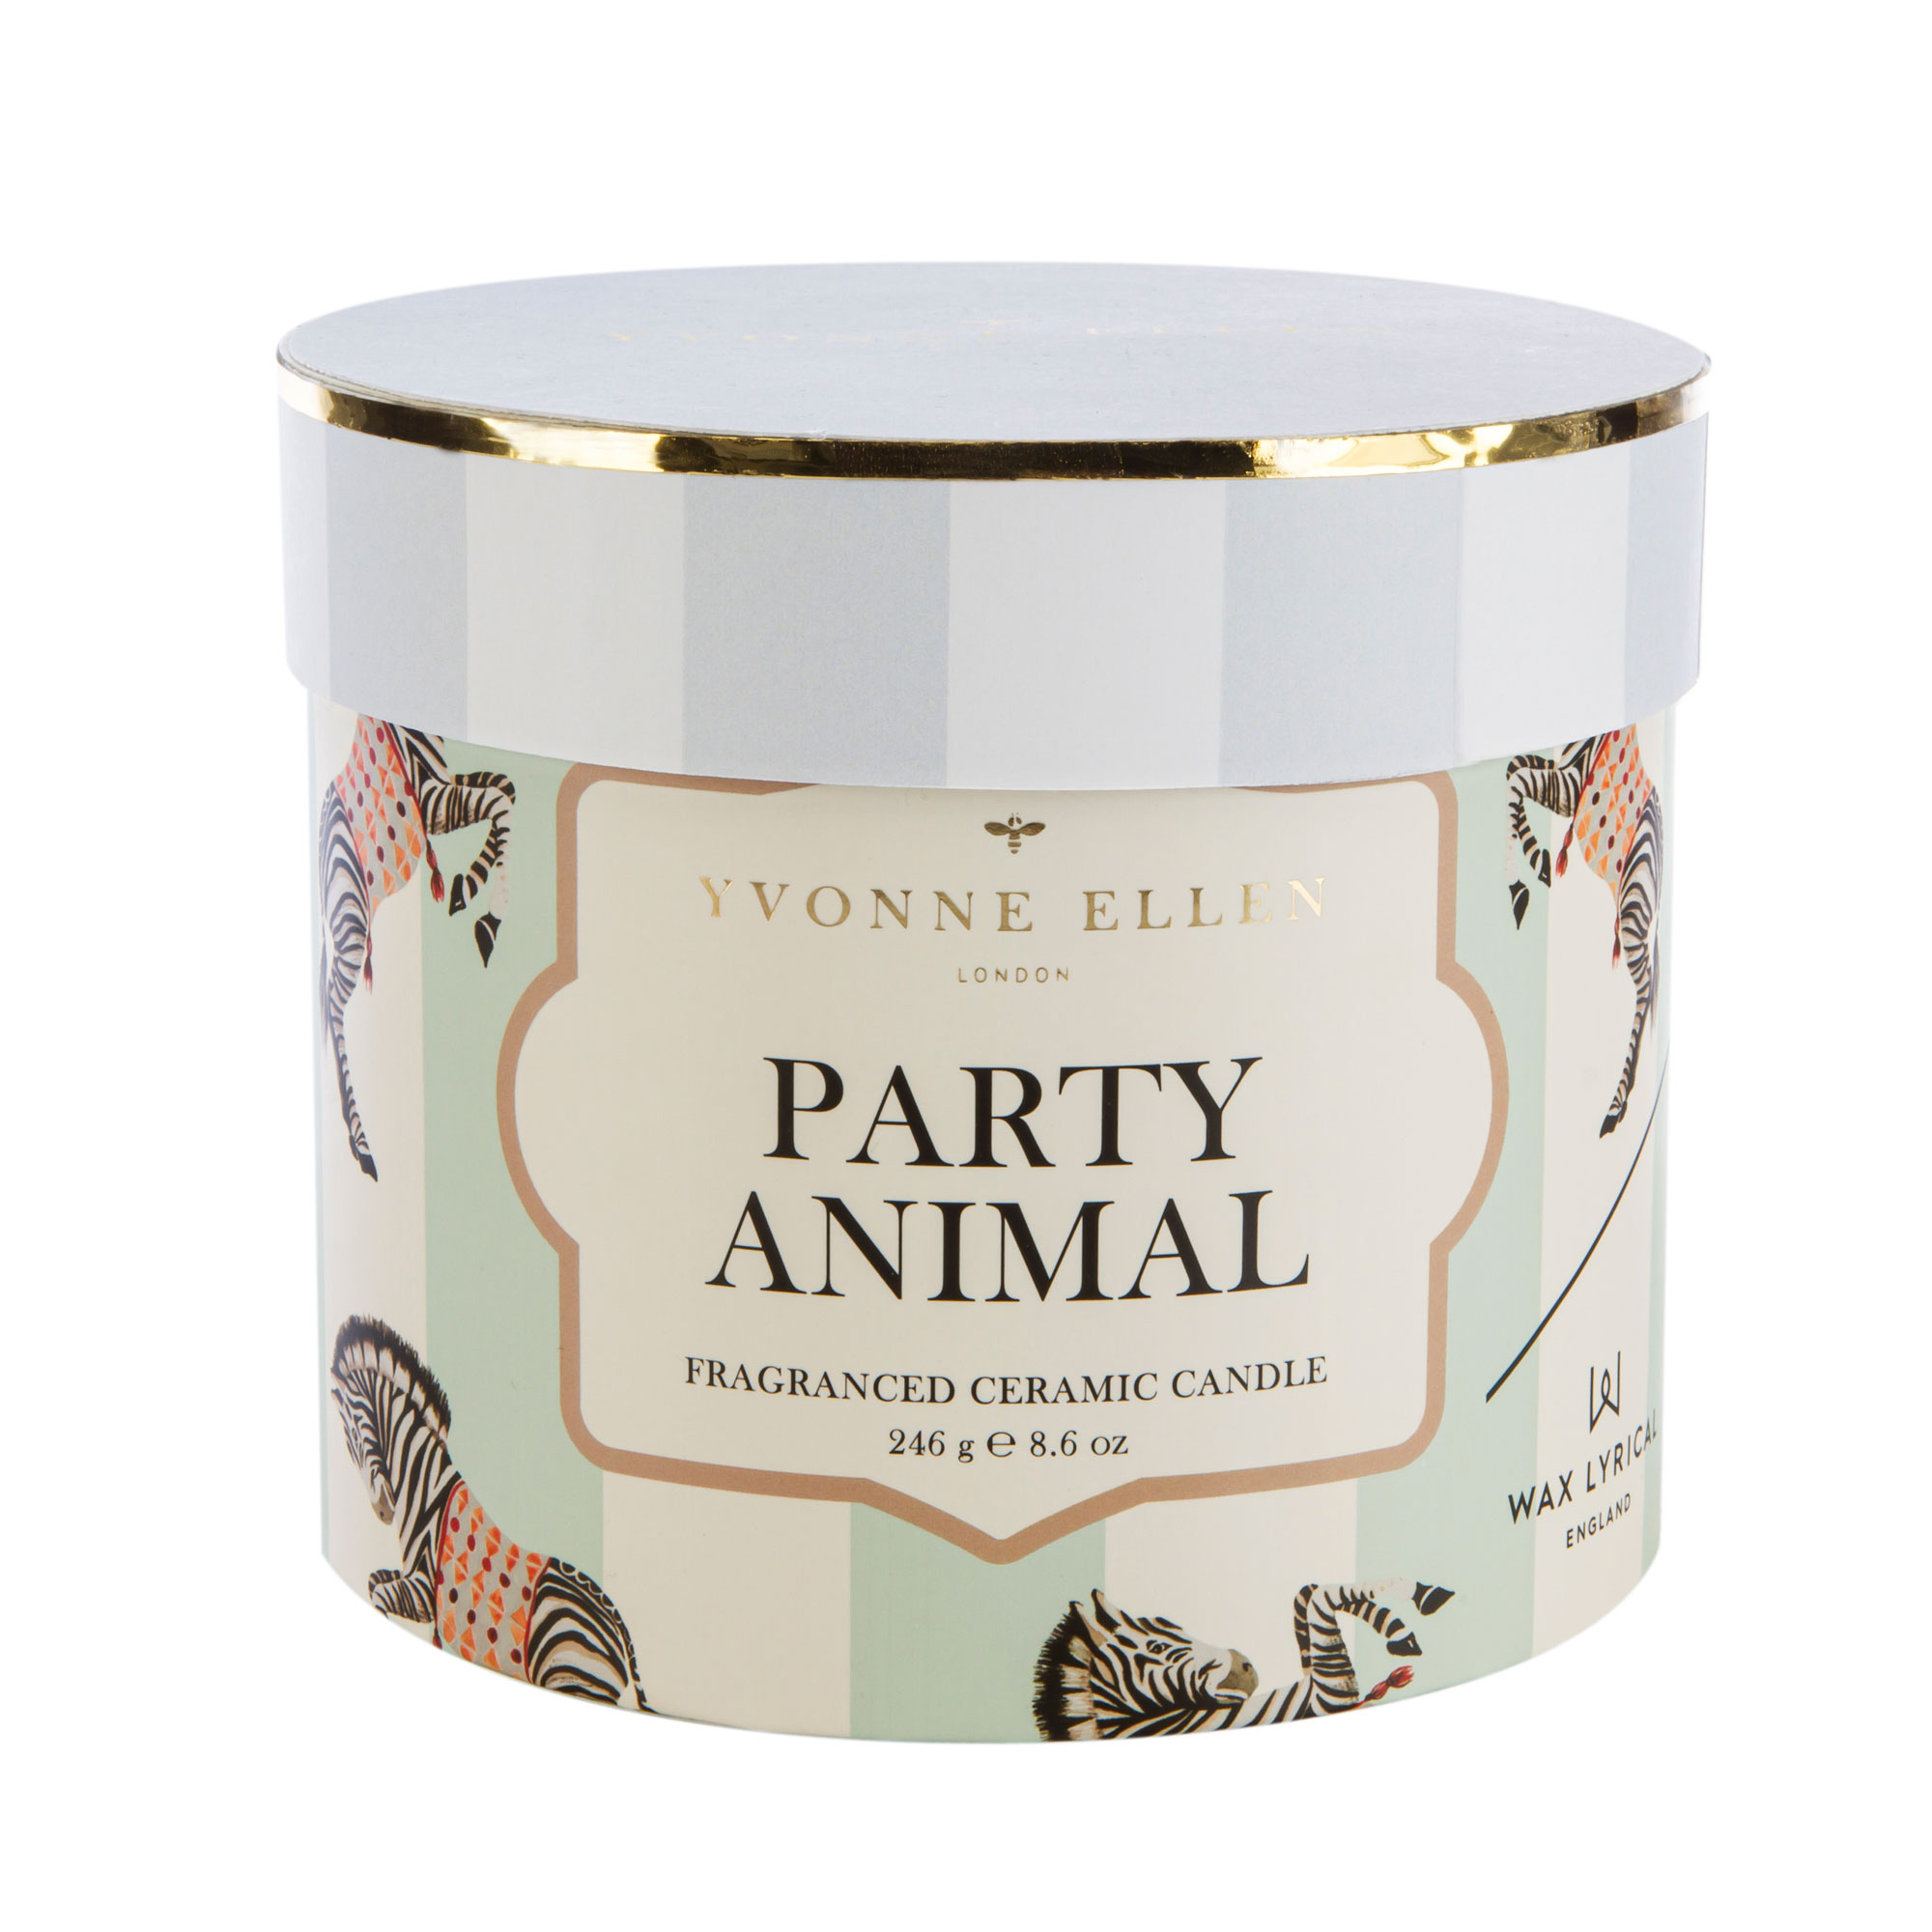 Party Animal Multi Wick Candle image number 3